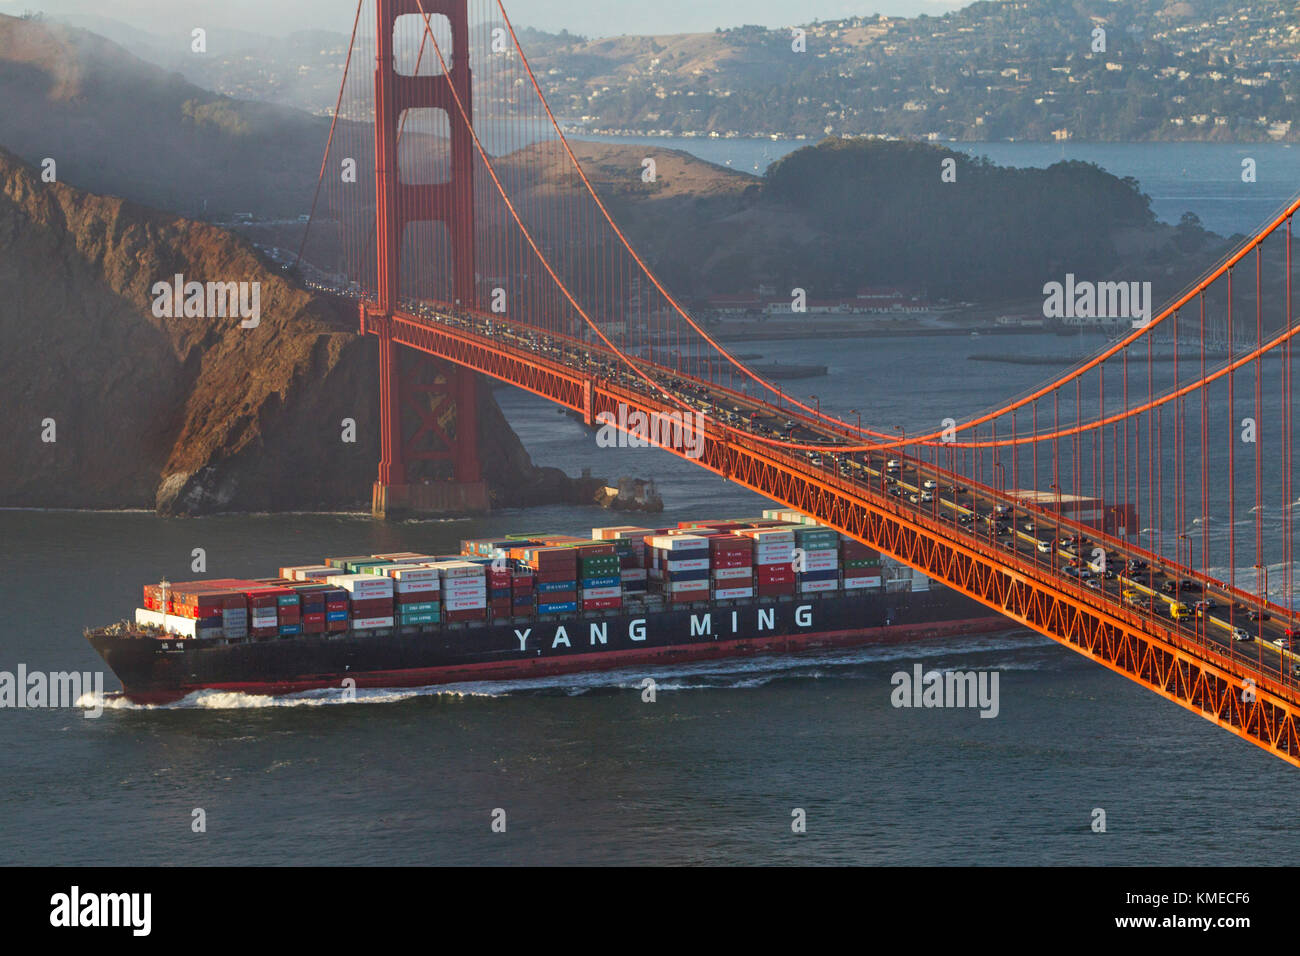 Frachter Segeln unter der Golden Gate Bridge in San Francisco, San Francisco, Kalifornien, USA Stockbild